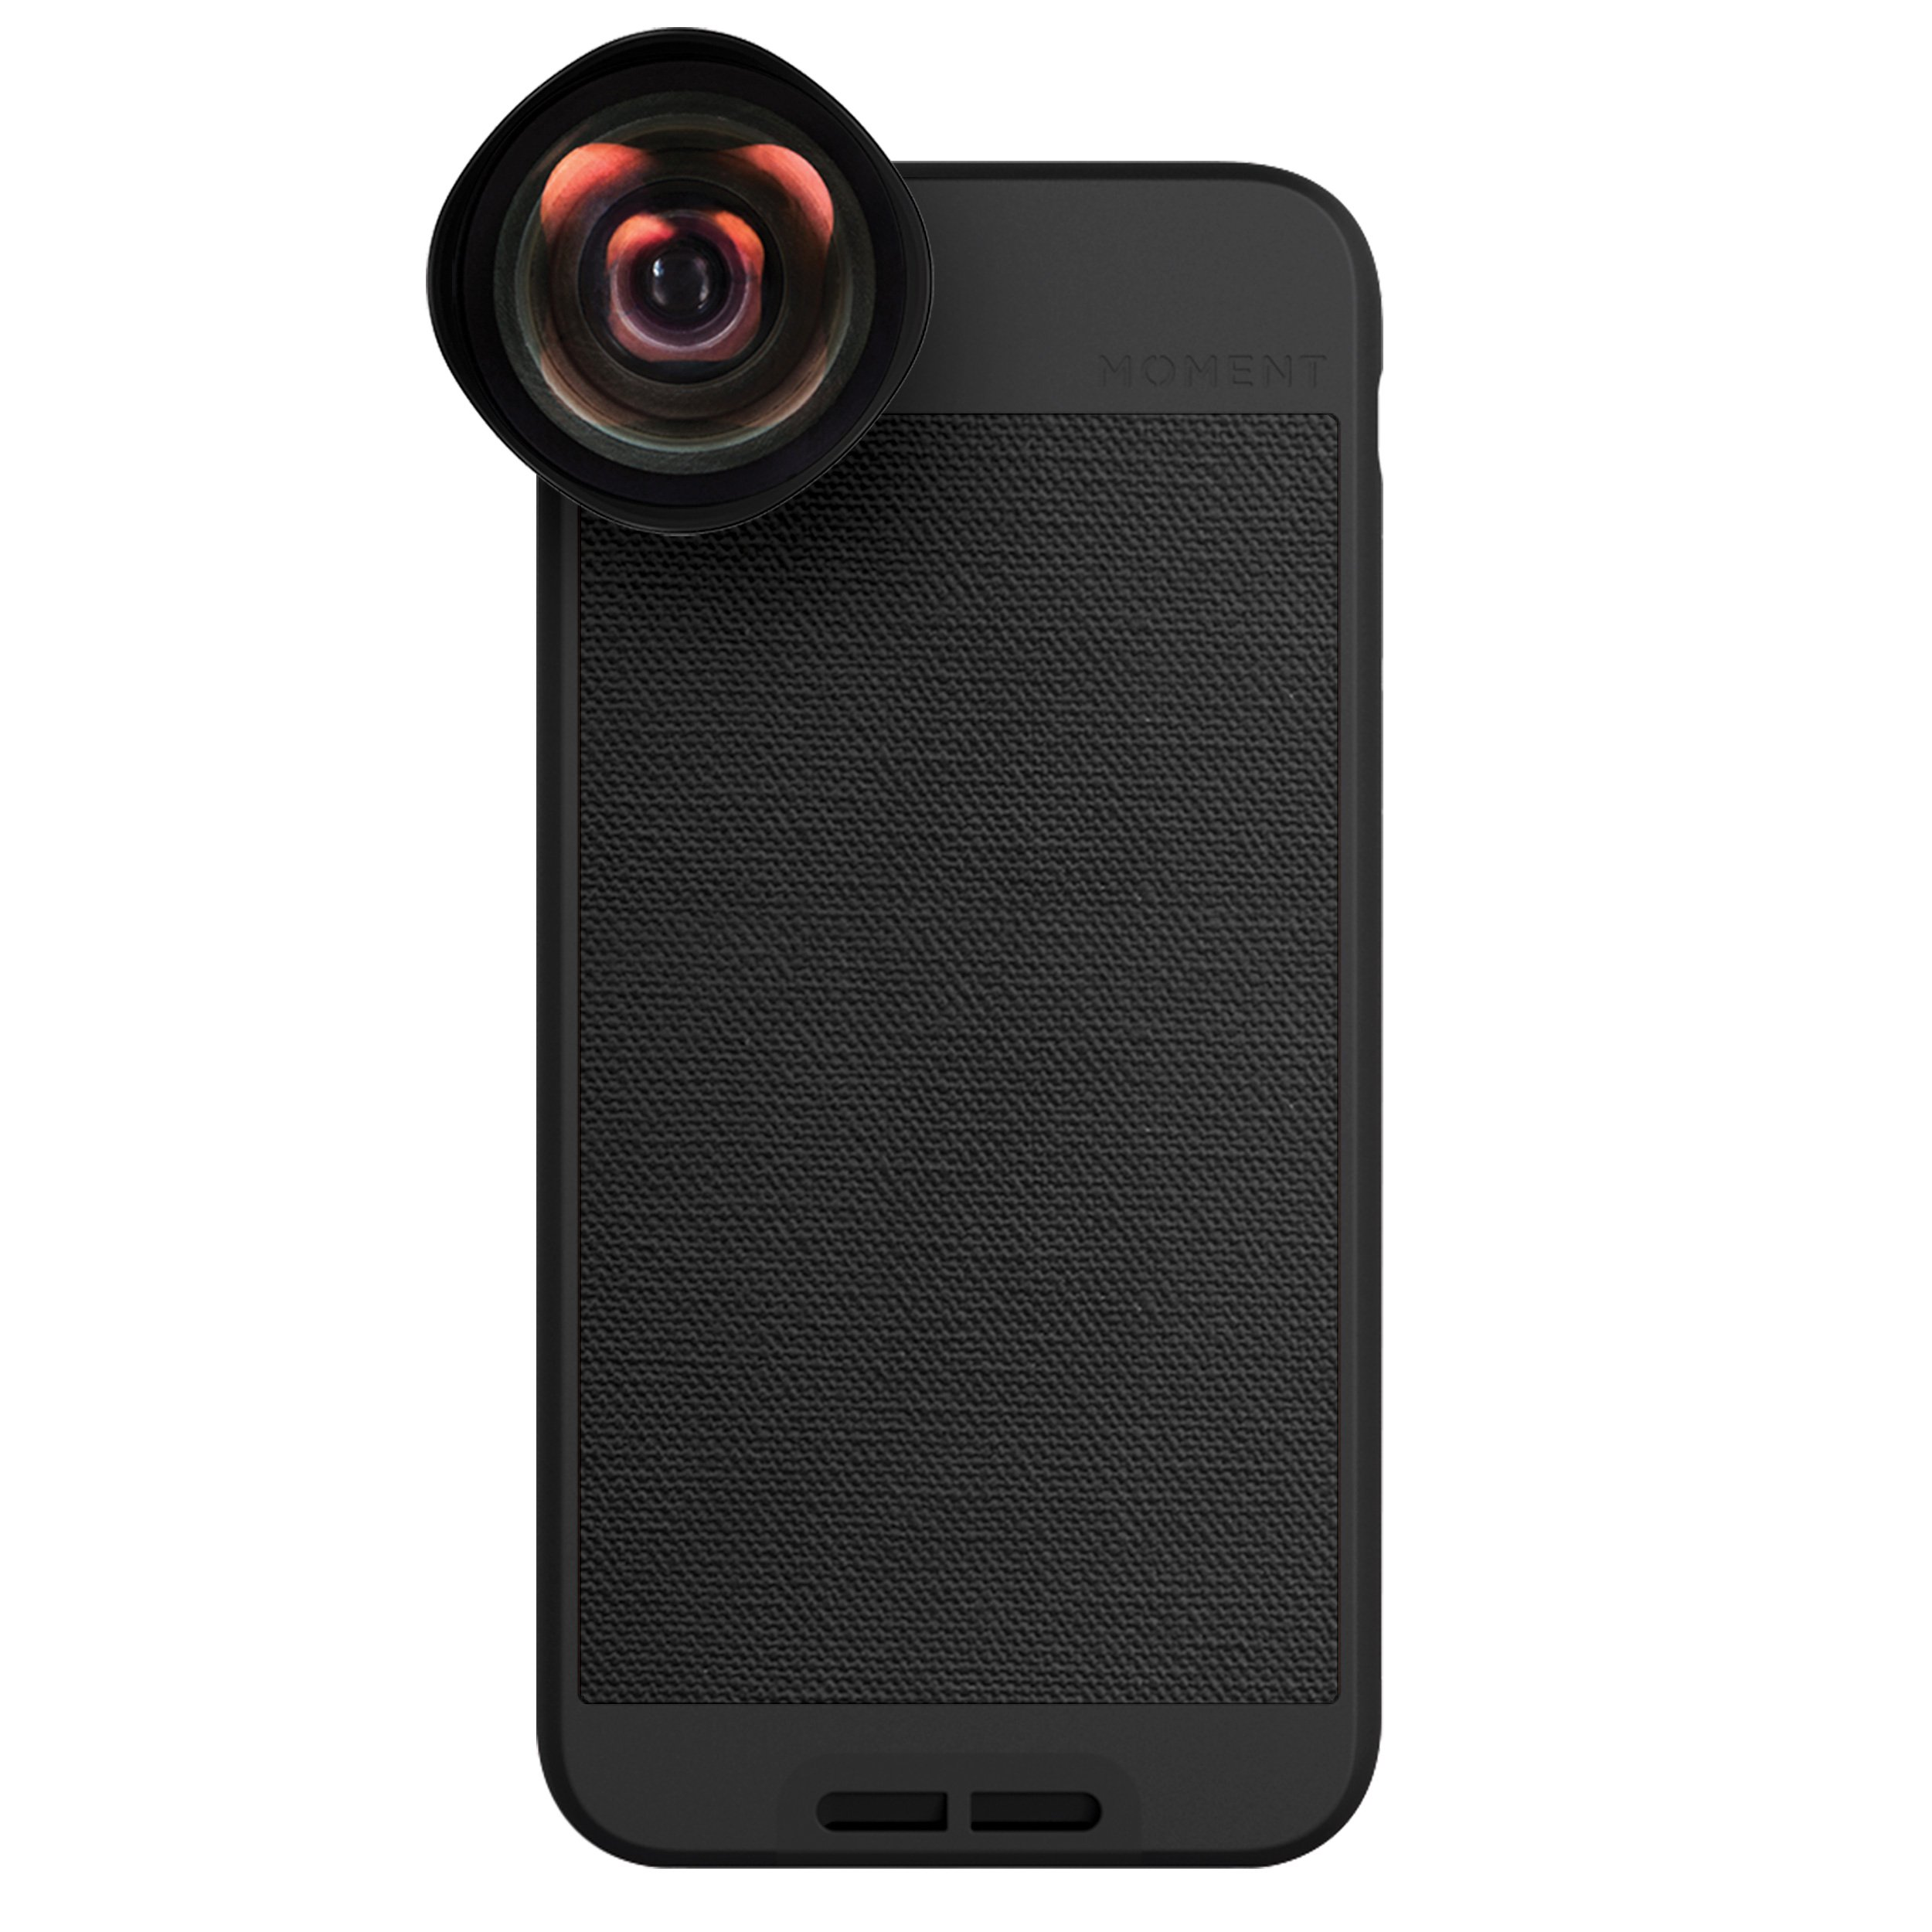 iPhone 6 Case with Wide Lens Kit    Moment Black Canvas Photo Case plus Wide Lens    Best iphone wide attachment lens with thin protective case.